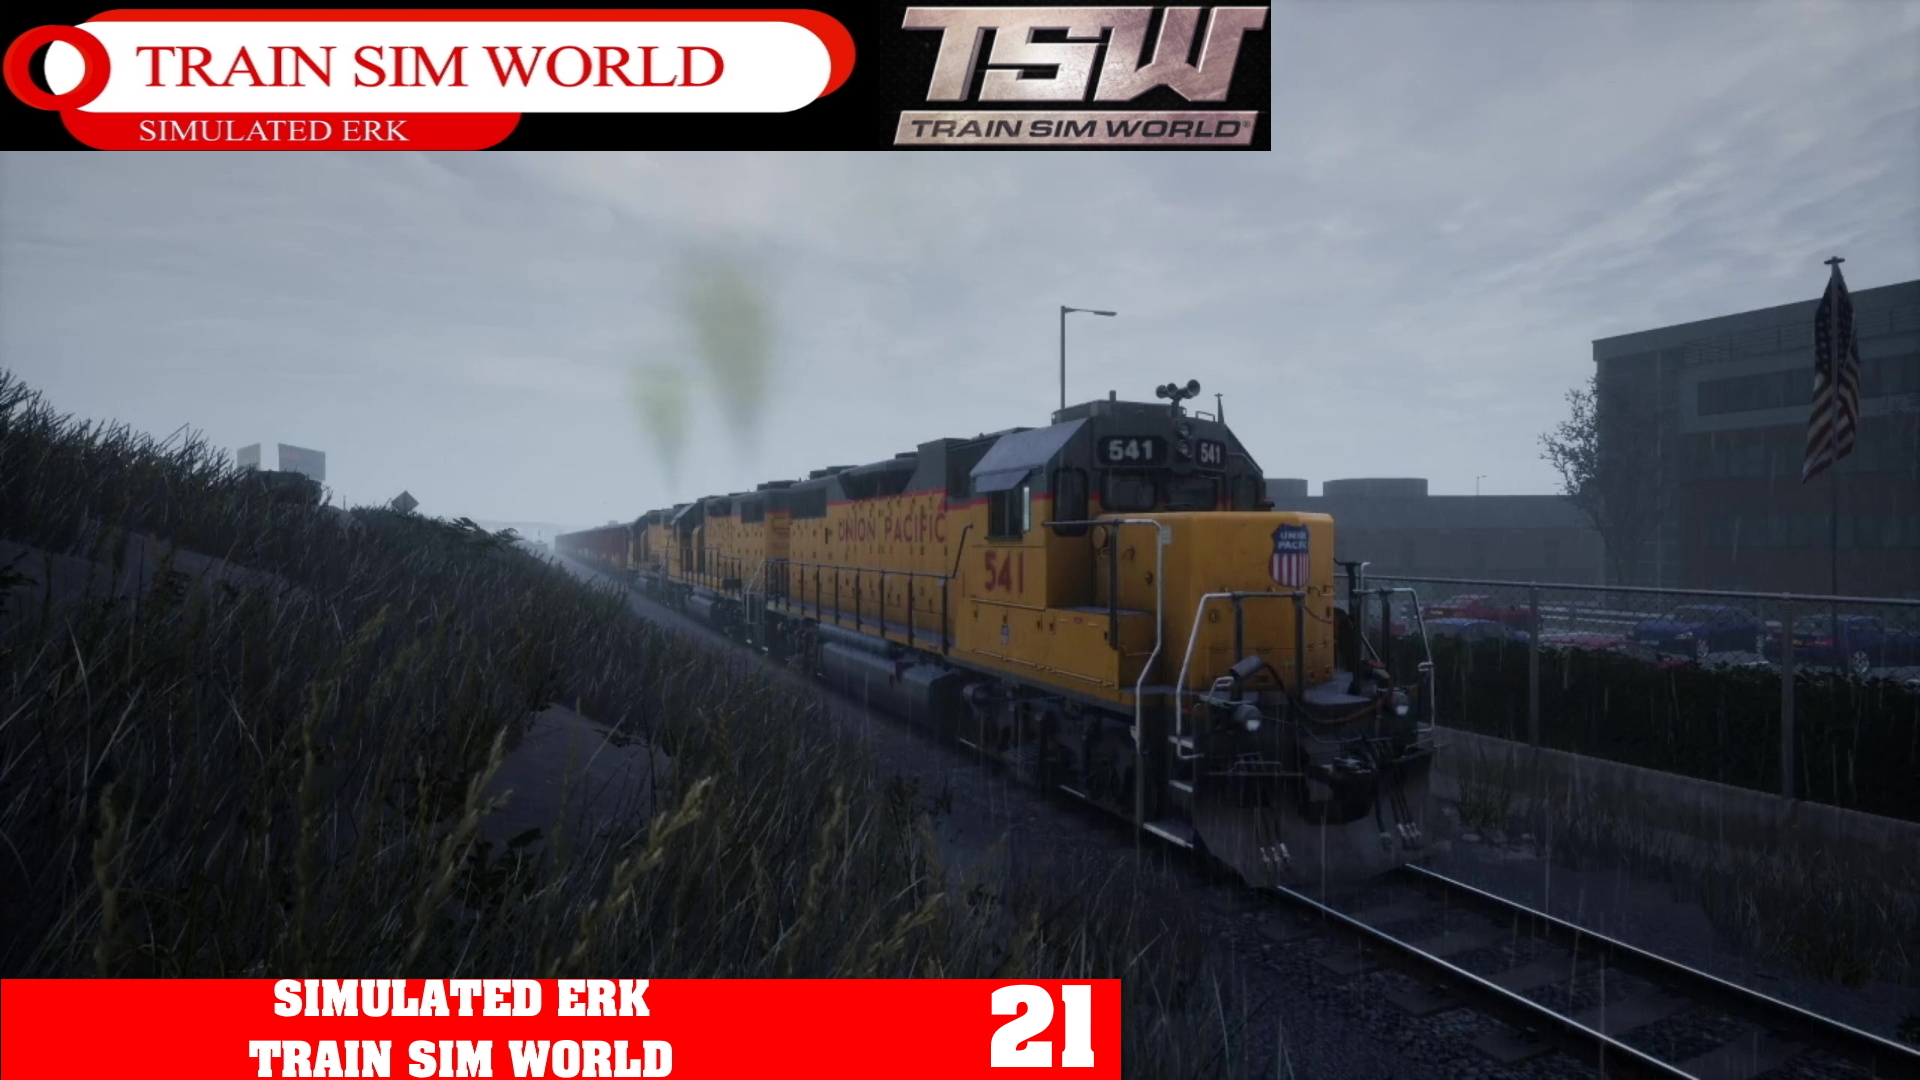 Simulated Erk: Train Sim World episode 21 | San Fran Freighter